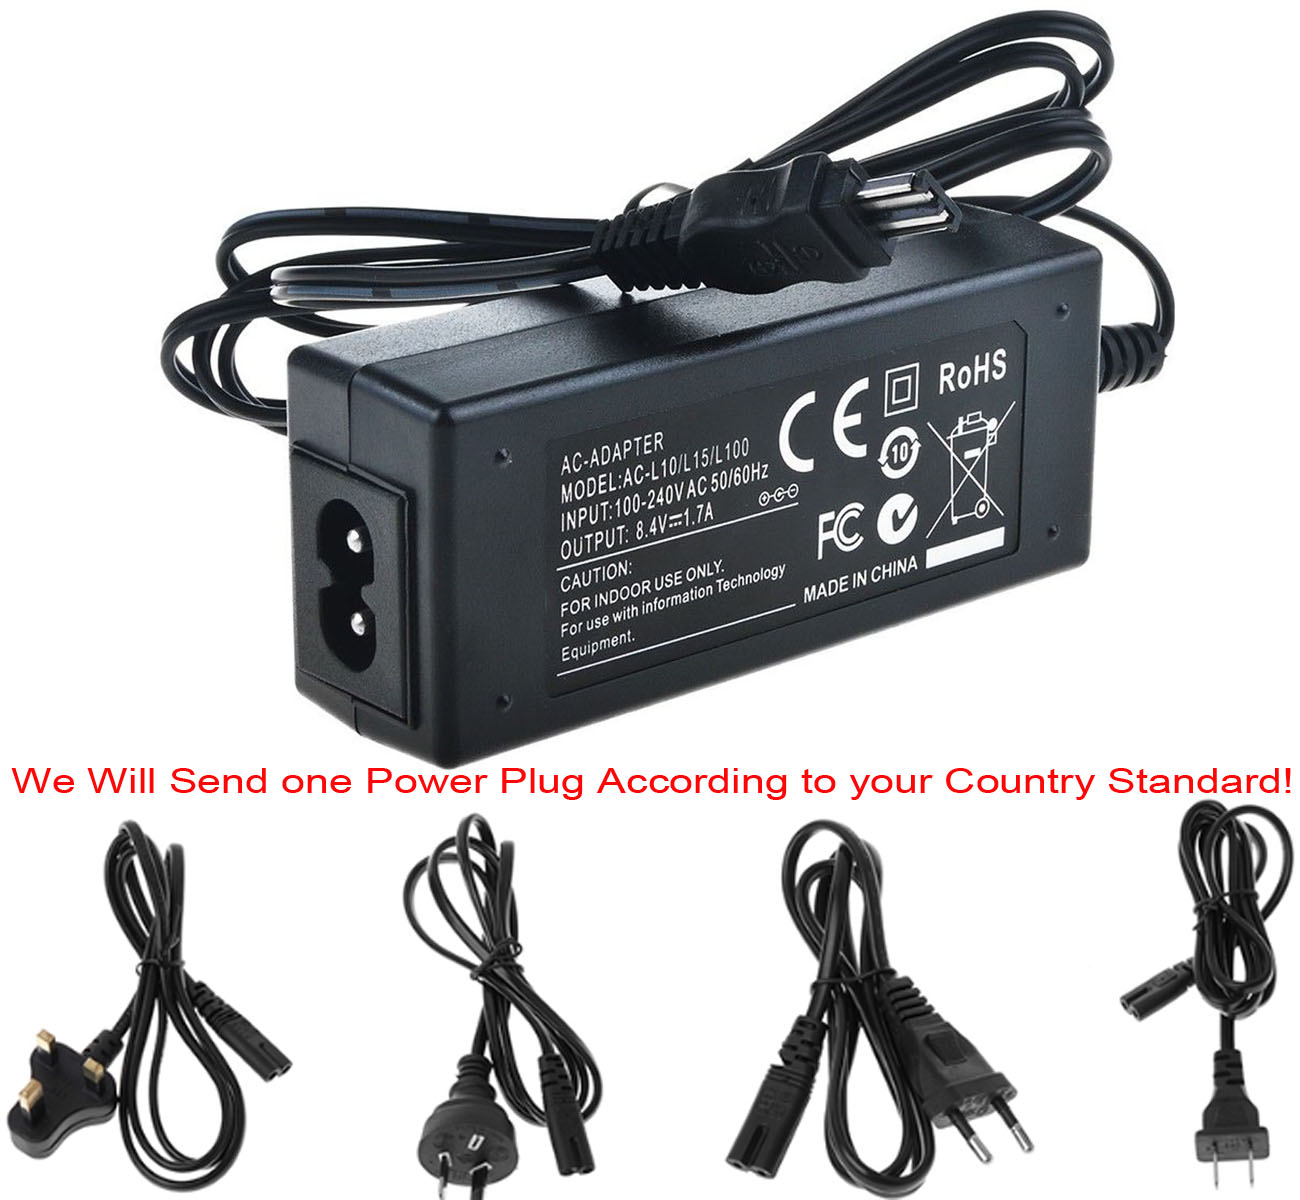 AC Power Adapter Charger For Sony AC-L10, AC-L10A, AC-L10B, AC-L10C, AC-L15, AC-L15A, AC-L15B, AC-L15C, AC-L100, AC-L100C